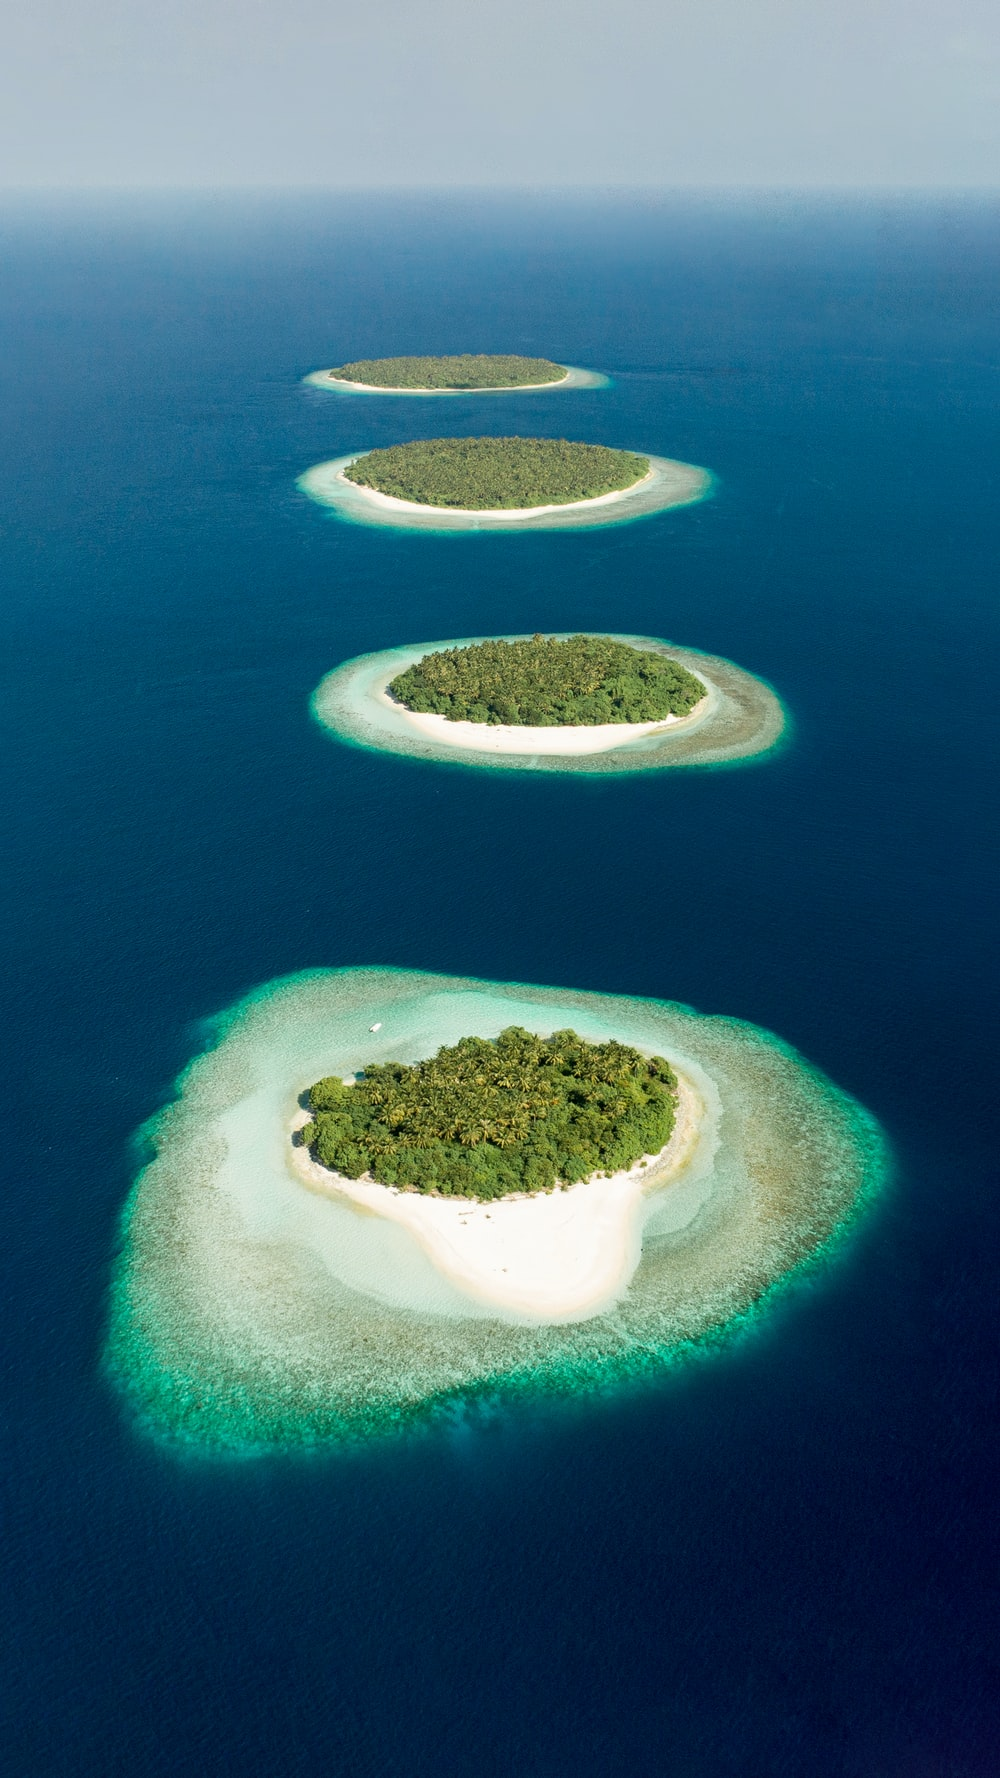 green and brown island in the middle of blue water